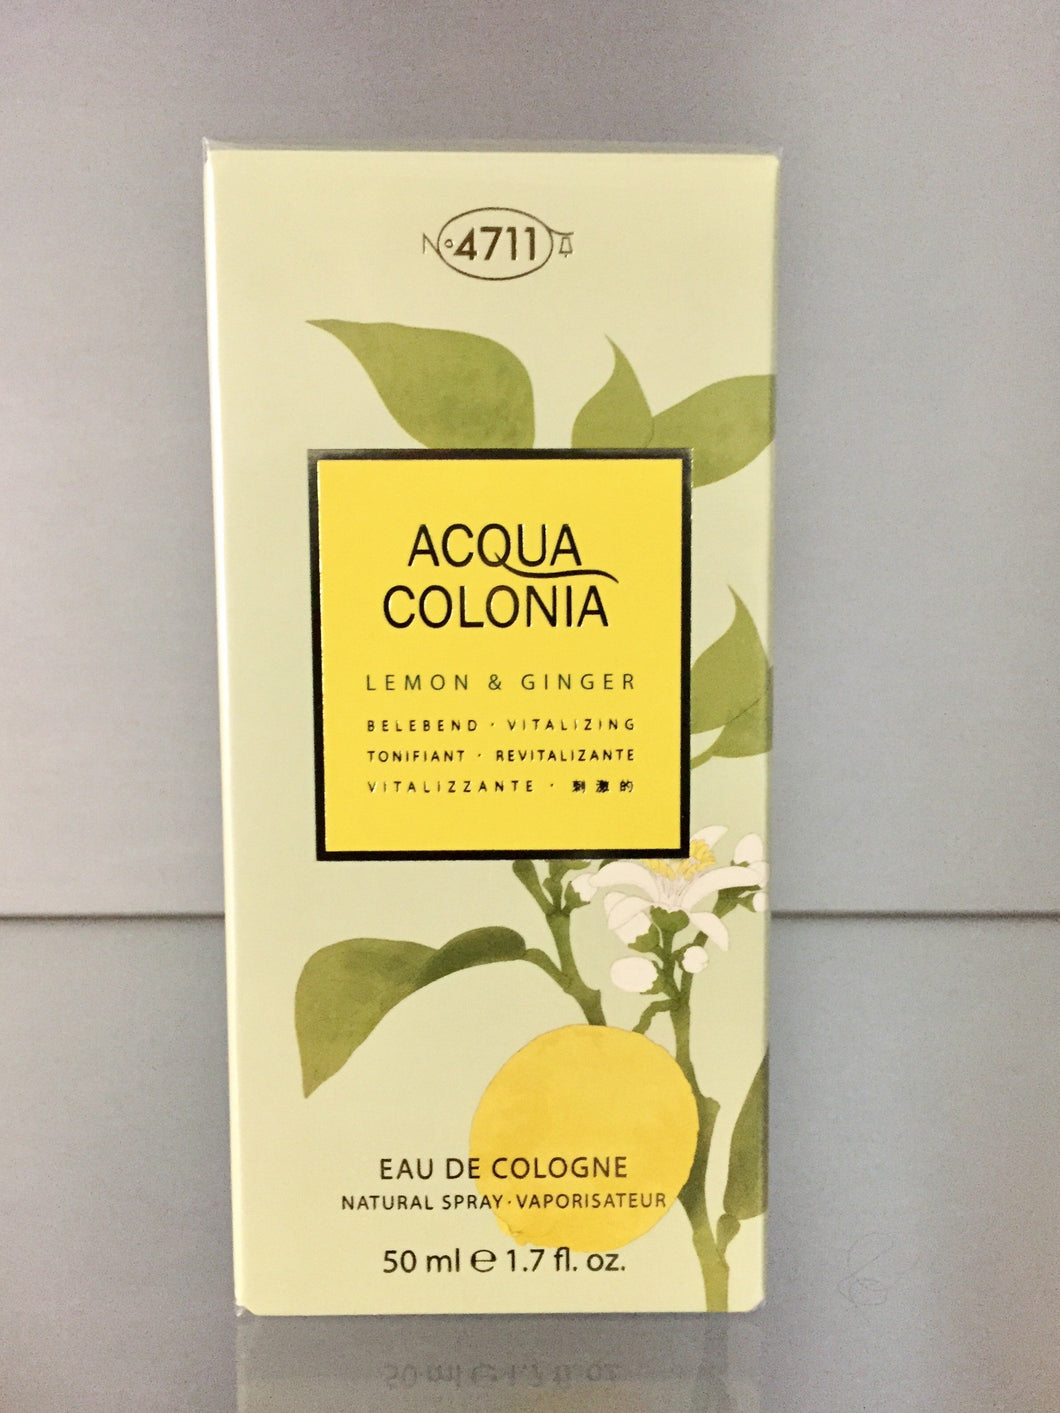 4711 Acqua Colonia LEMON & GINGER - 50ml - 4711